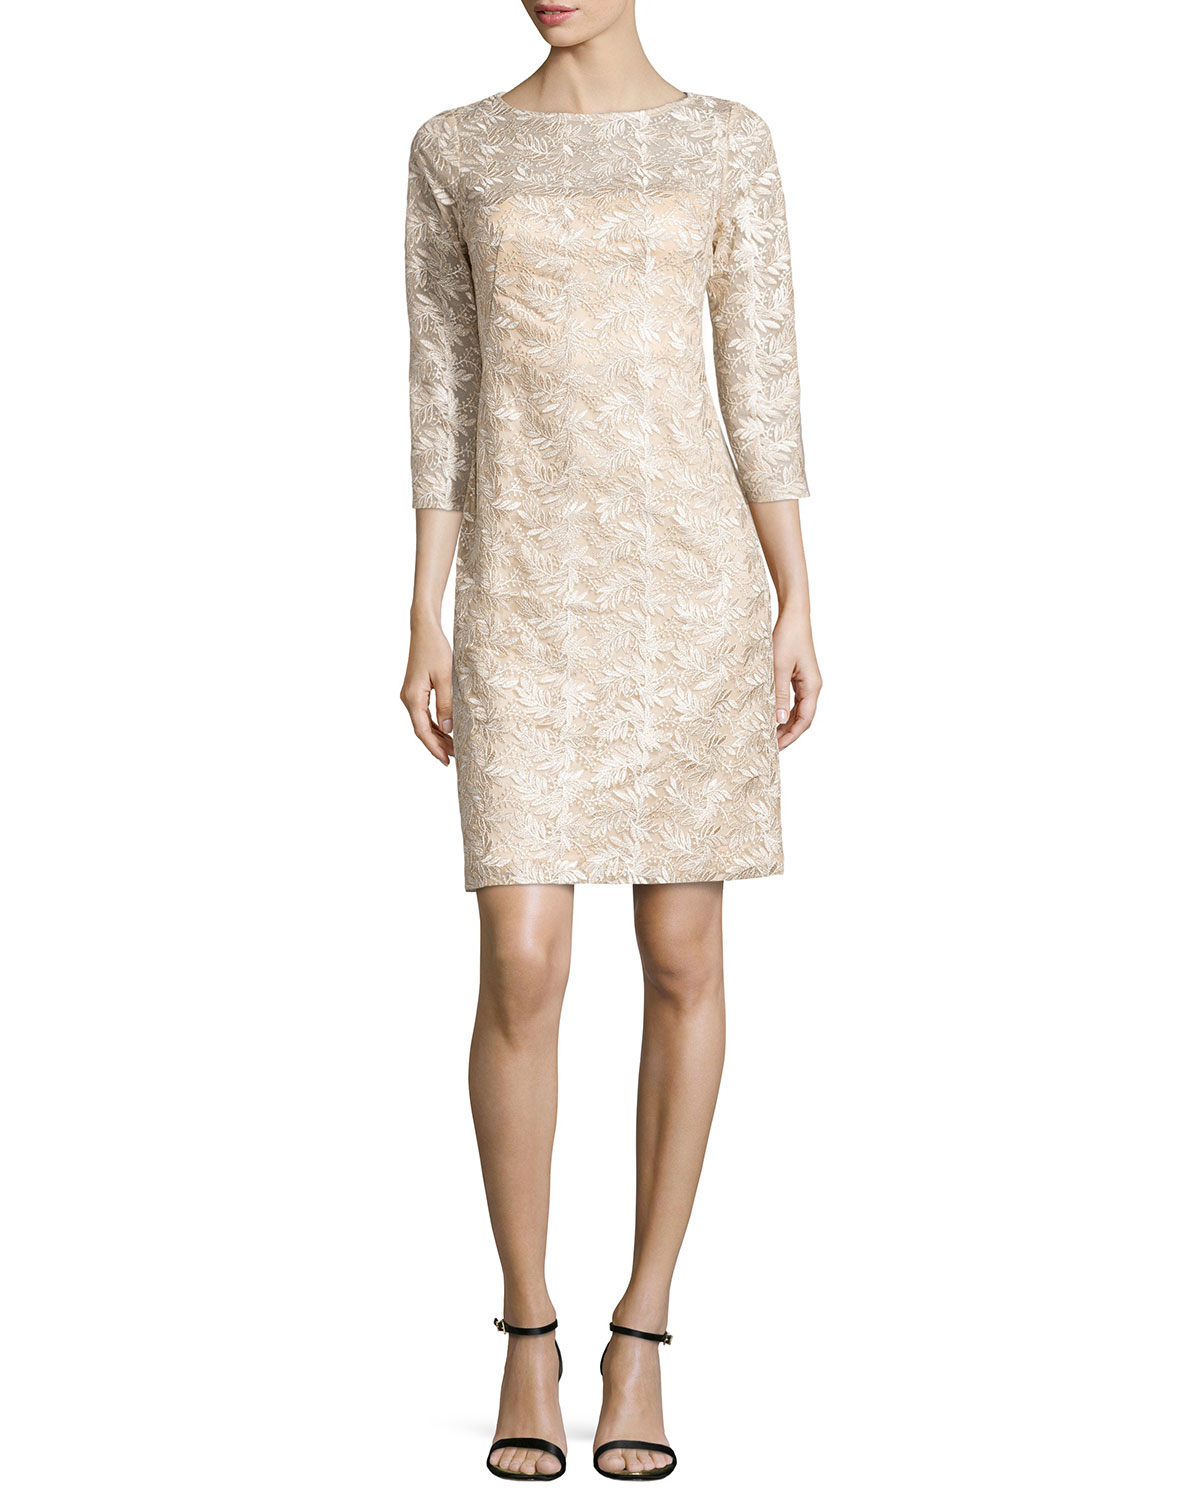 Sue wong 3/4-sleeve Embroidered Sheath Dress in Pink | Lyst